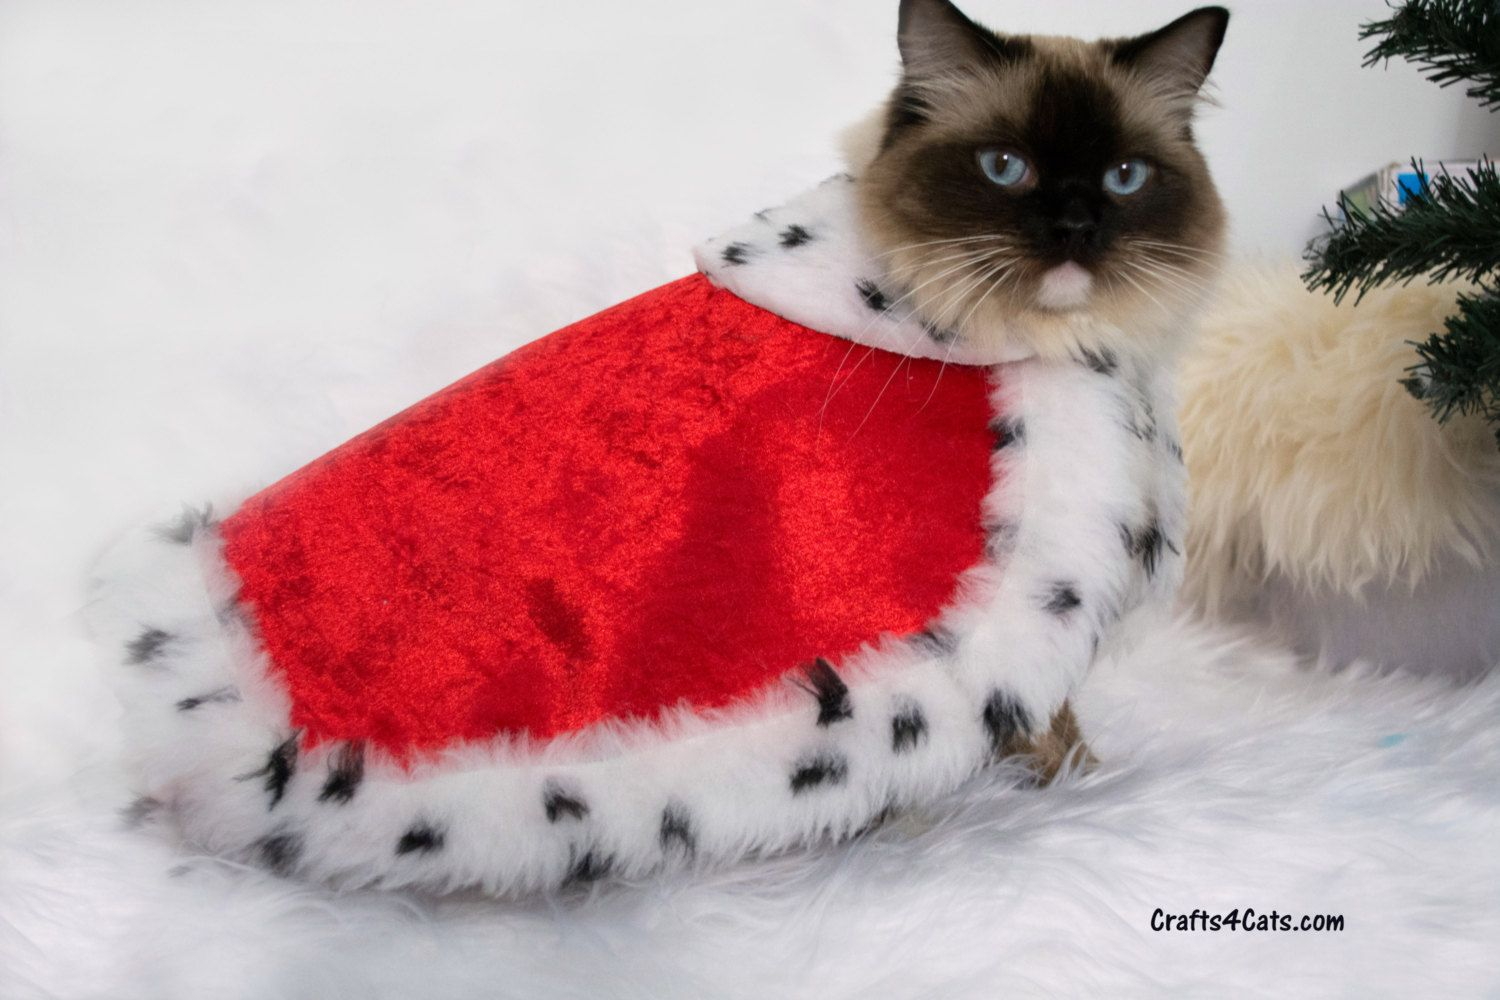 cat christmas cape royal cloak costume velvetvelour drape fabric cloak for cats by crafts4cats on etsy